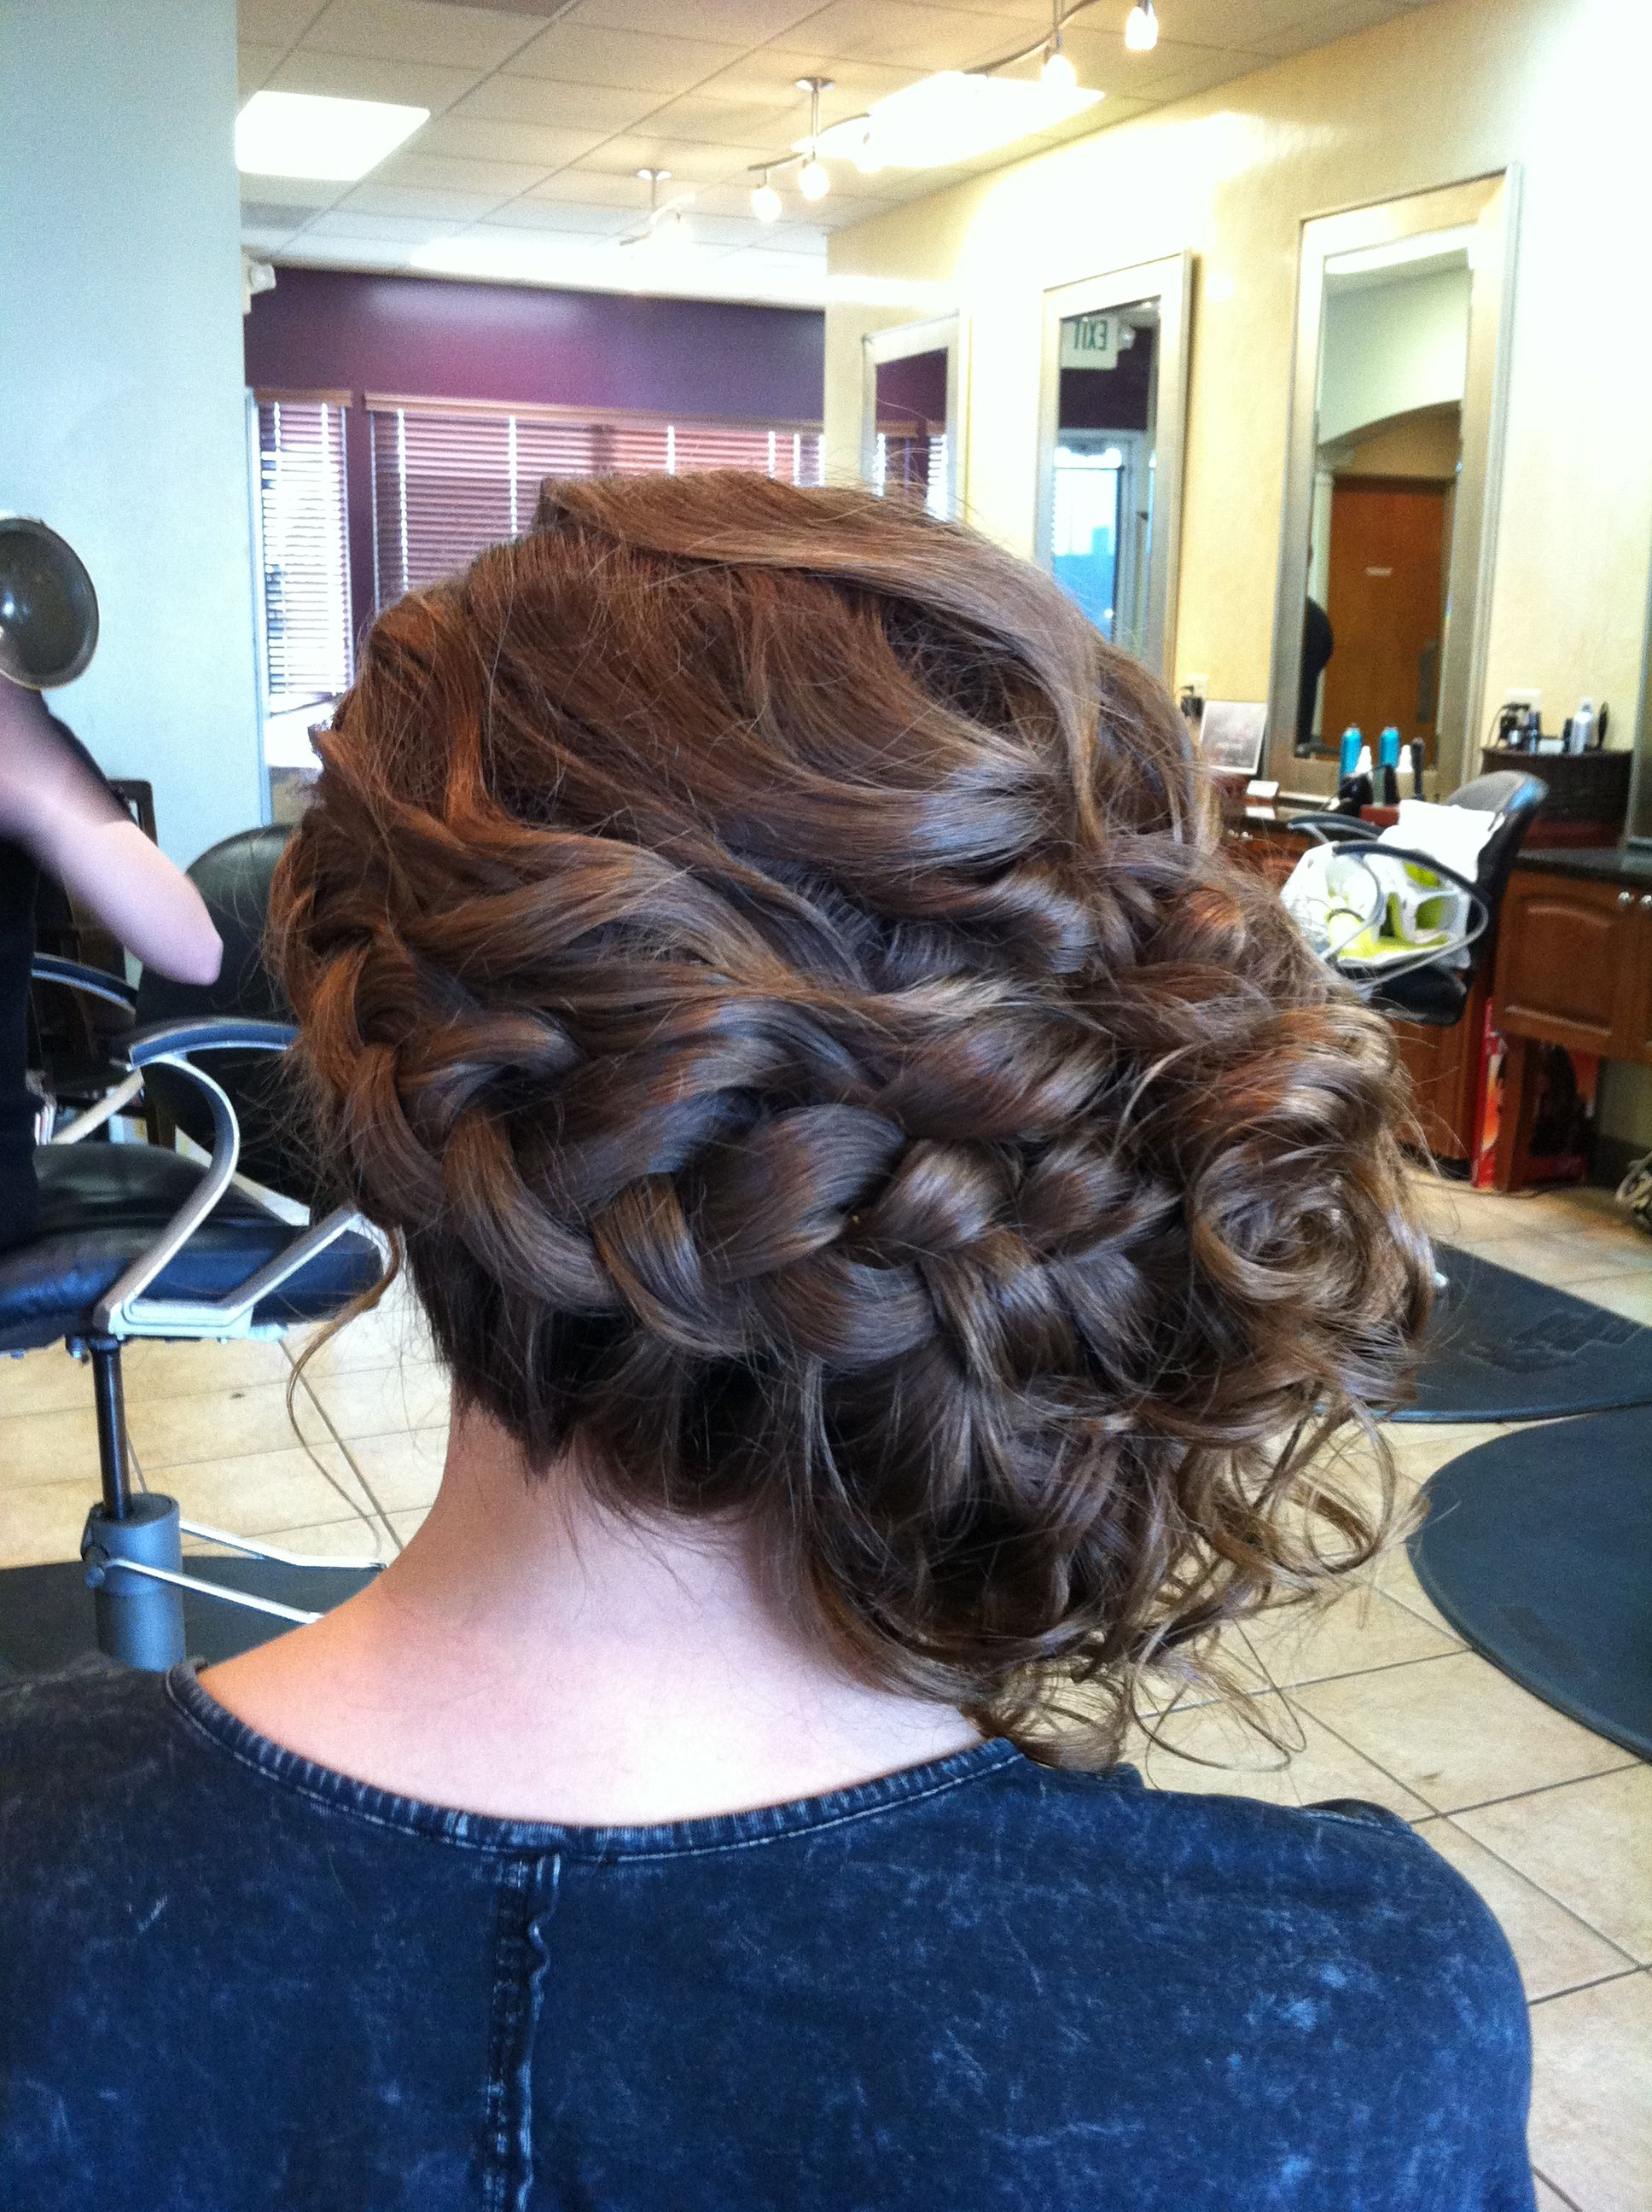 Braided side updo mary powers powers powers powers kathryn mclucas